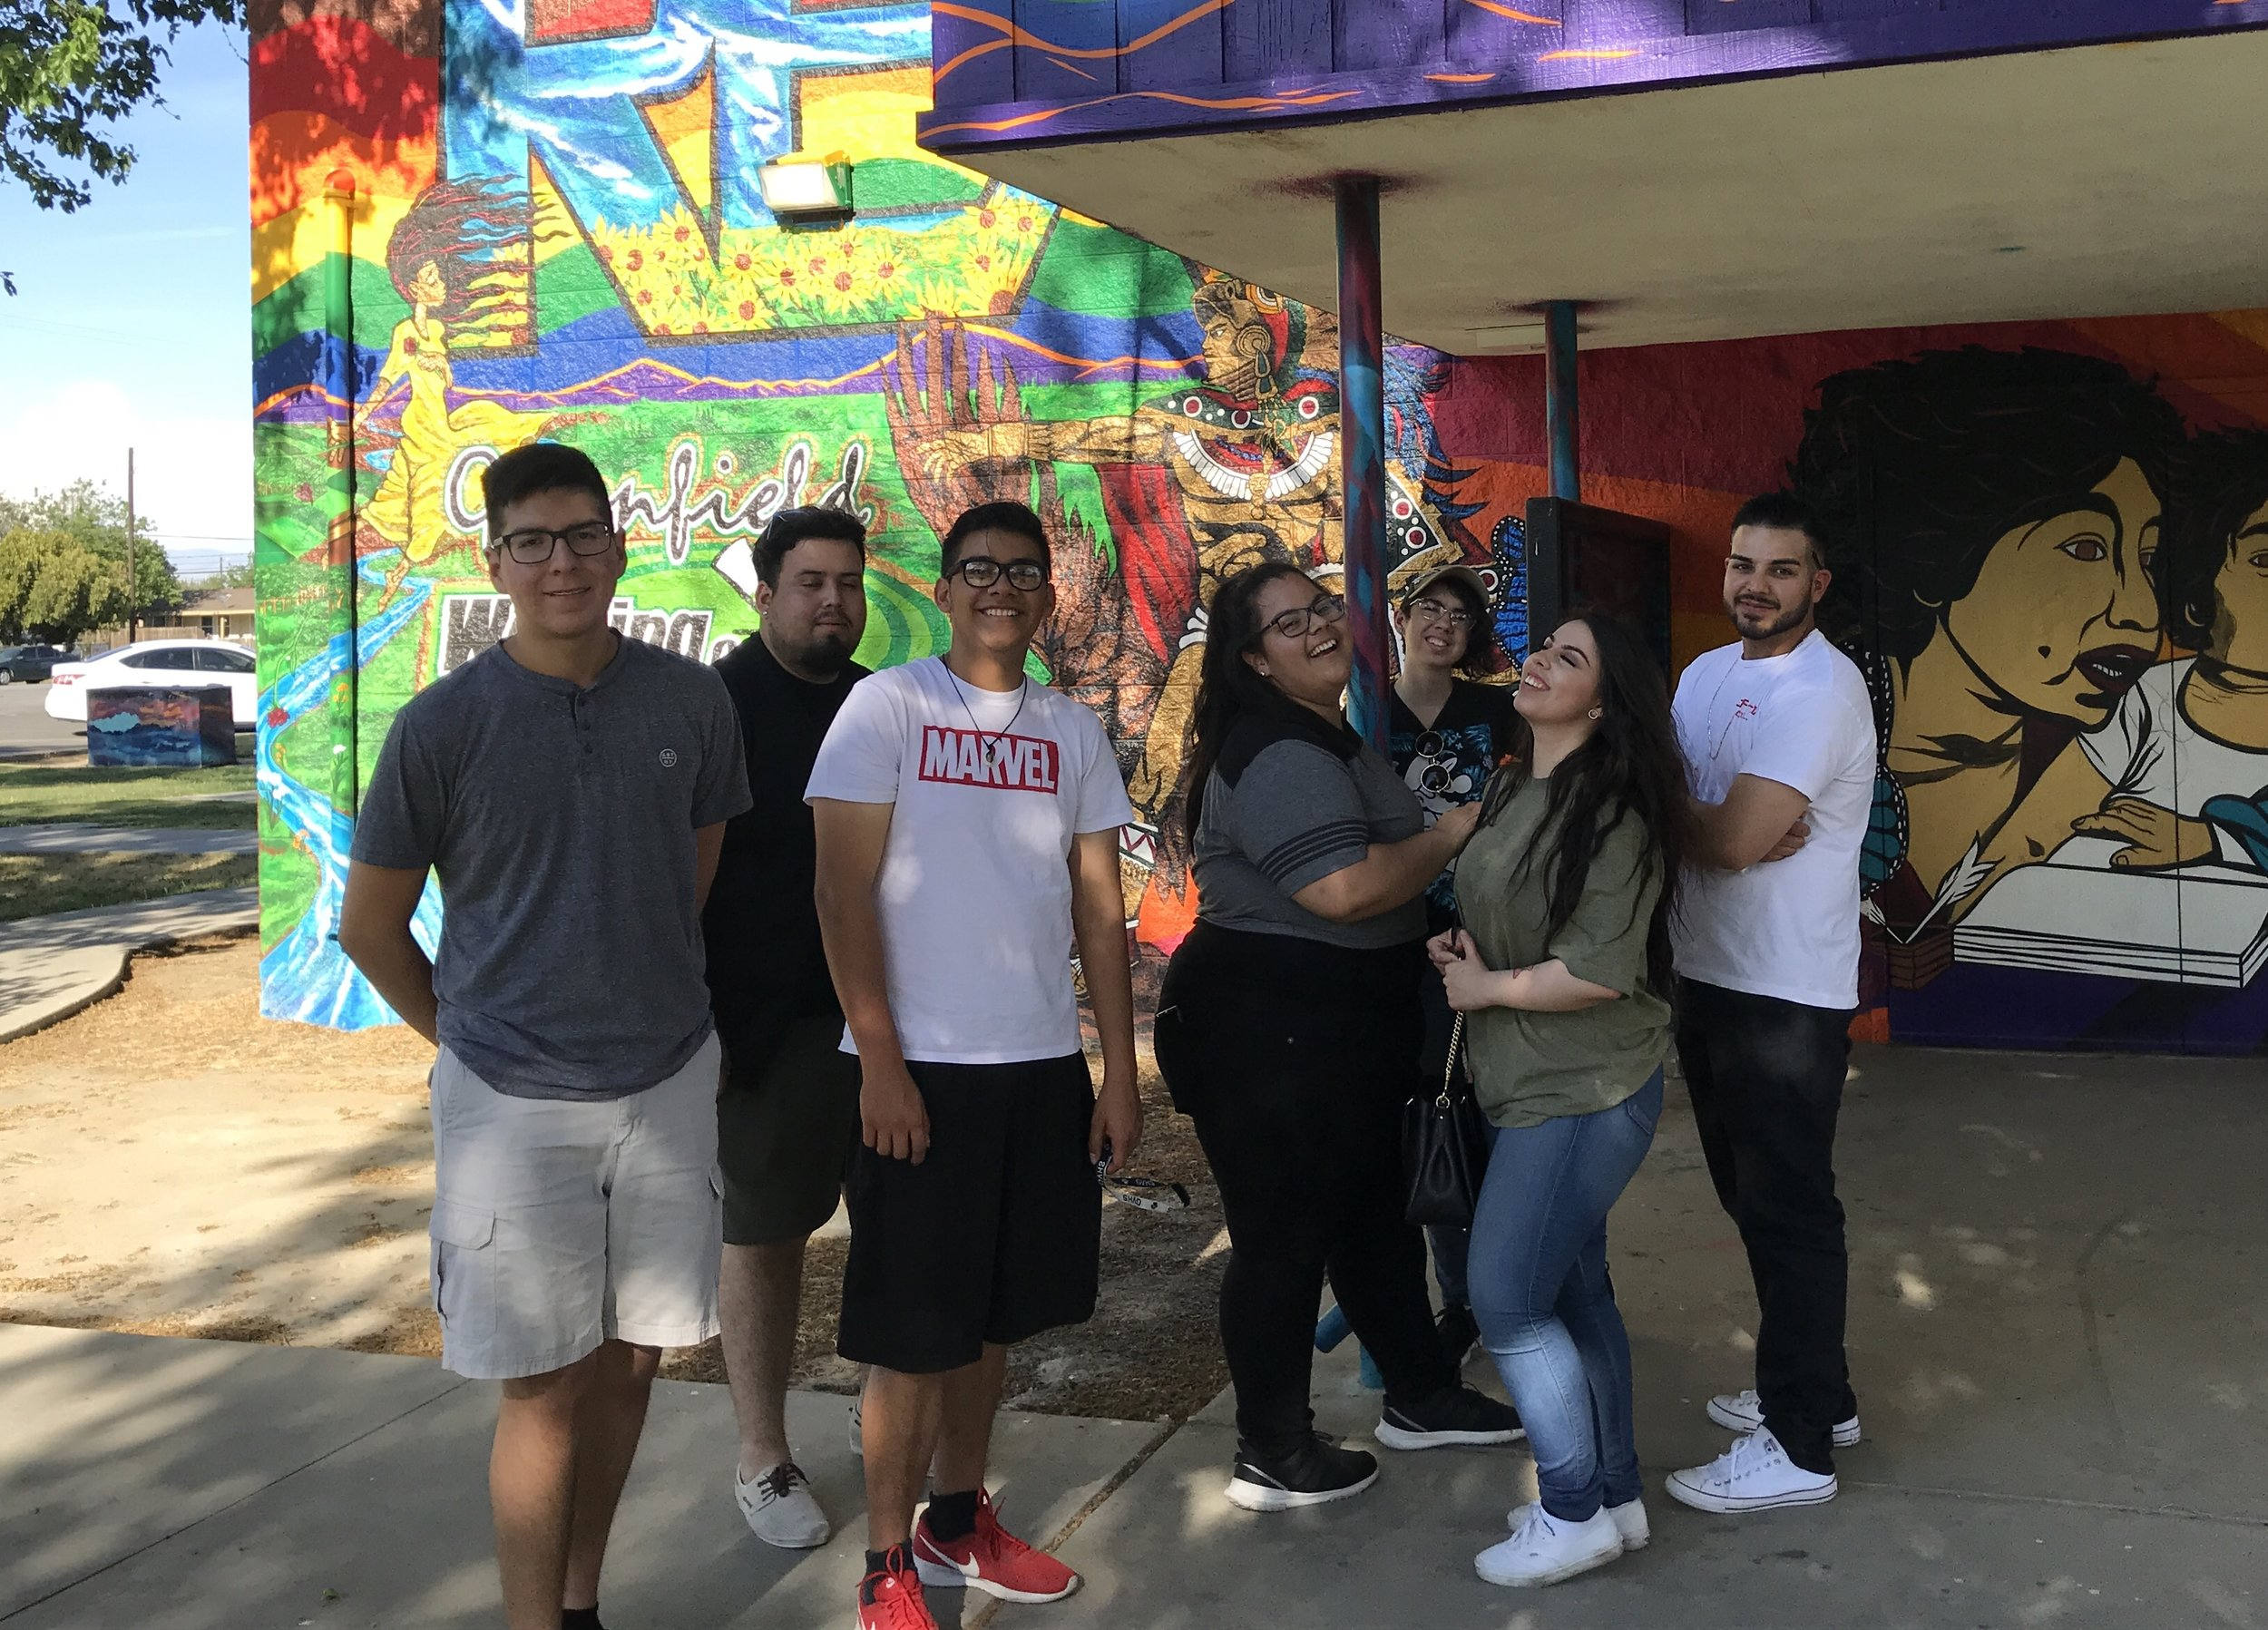 Youth Leaders from Greenfield Walking Group took a day to complete walking audits of all three focus parks to help plan their community event.